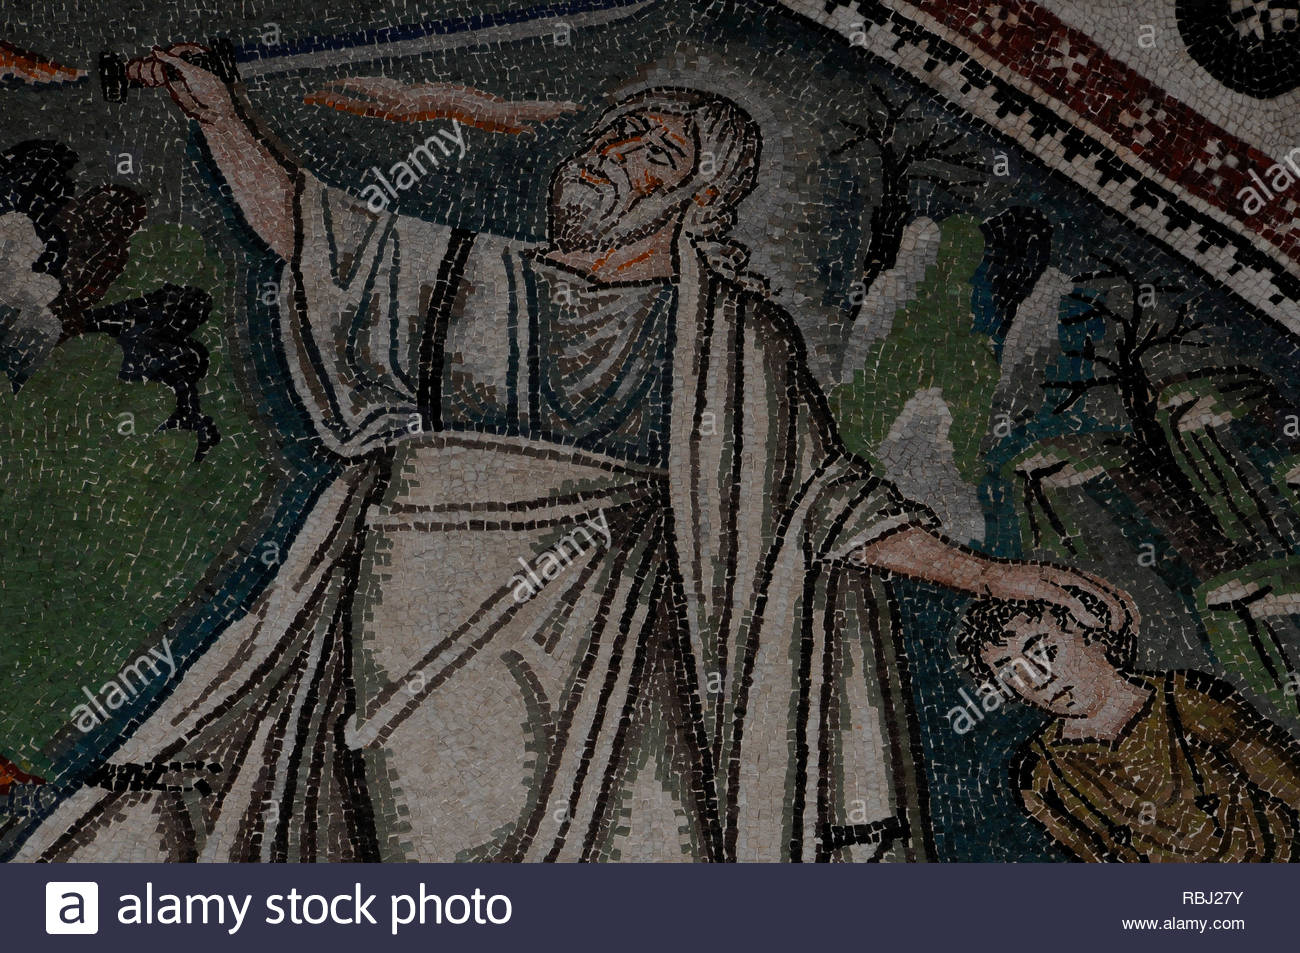 Ravenna, Emilia-Romagna, Italy: San Vitale Church 6th century Byzantine mosaic of Abraham preparing to obey God's will by sacrificing his son Isaac. - Stock Image